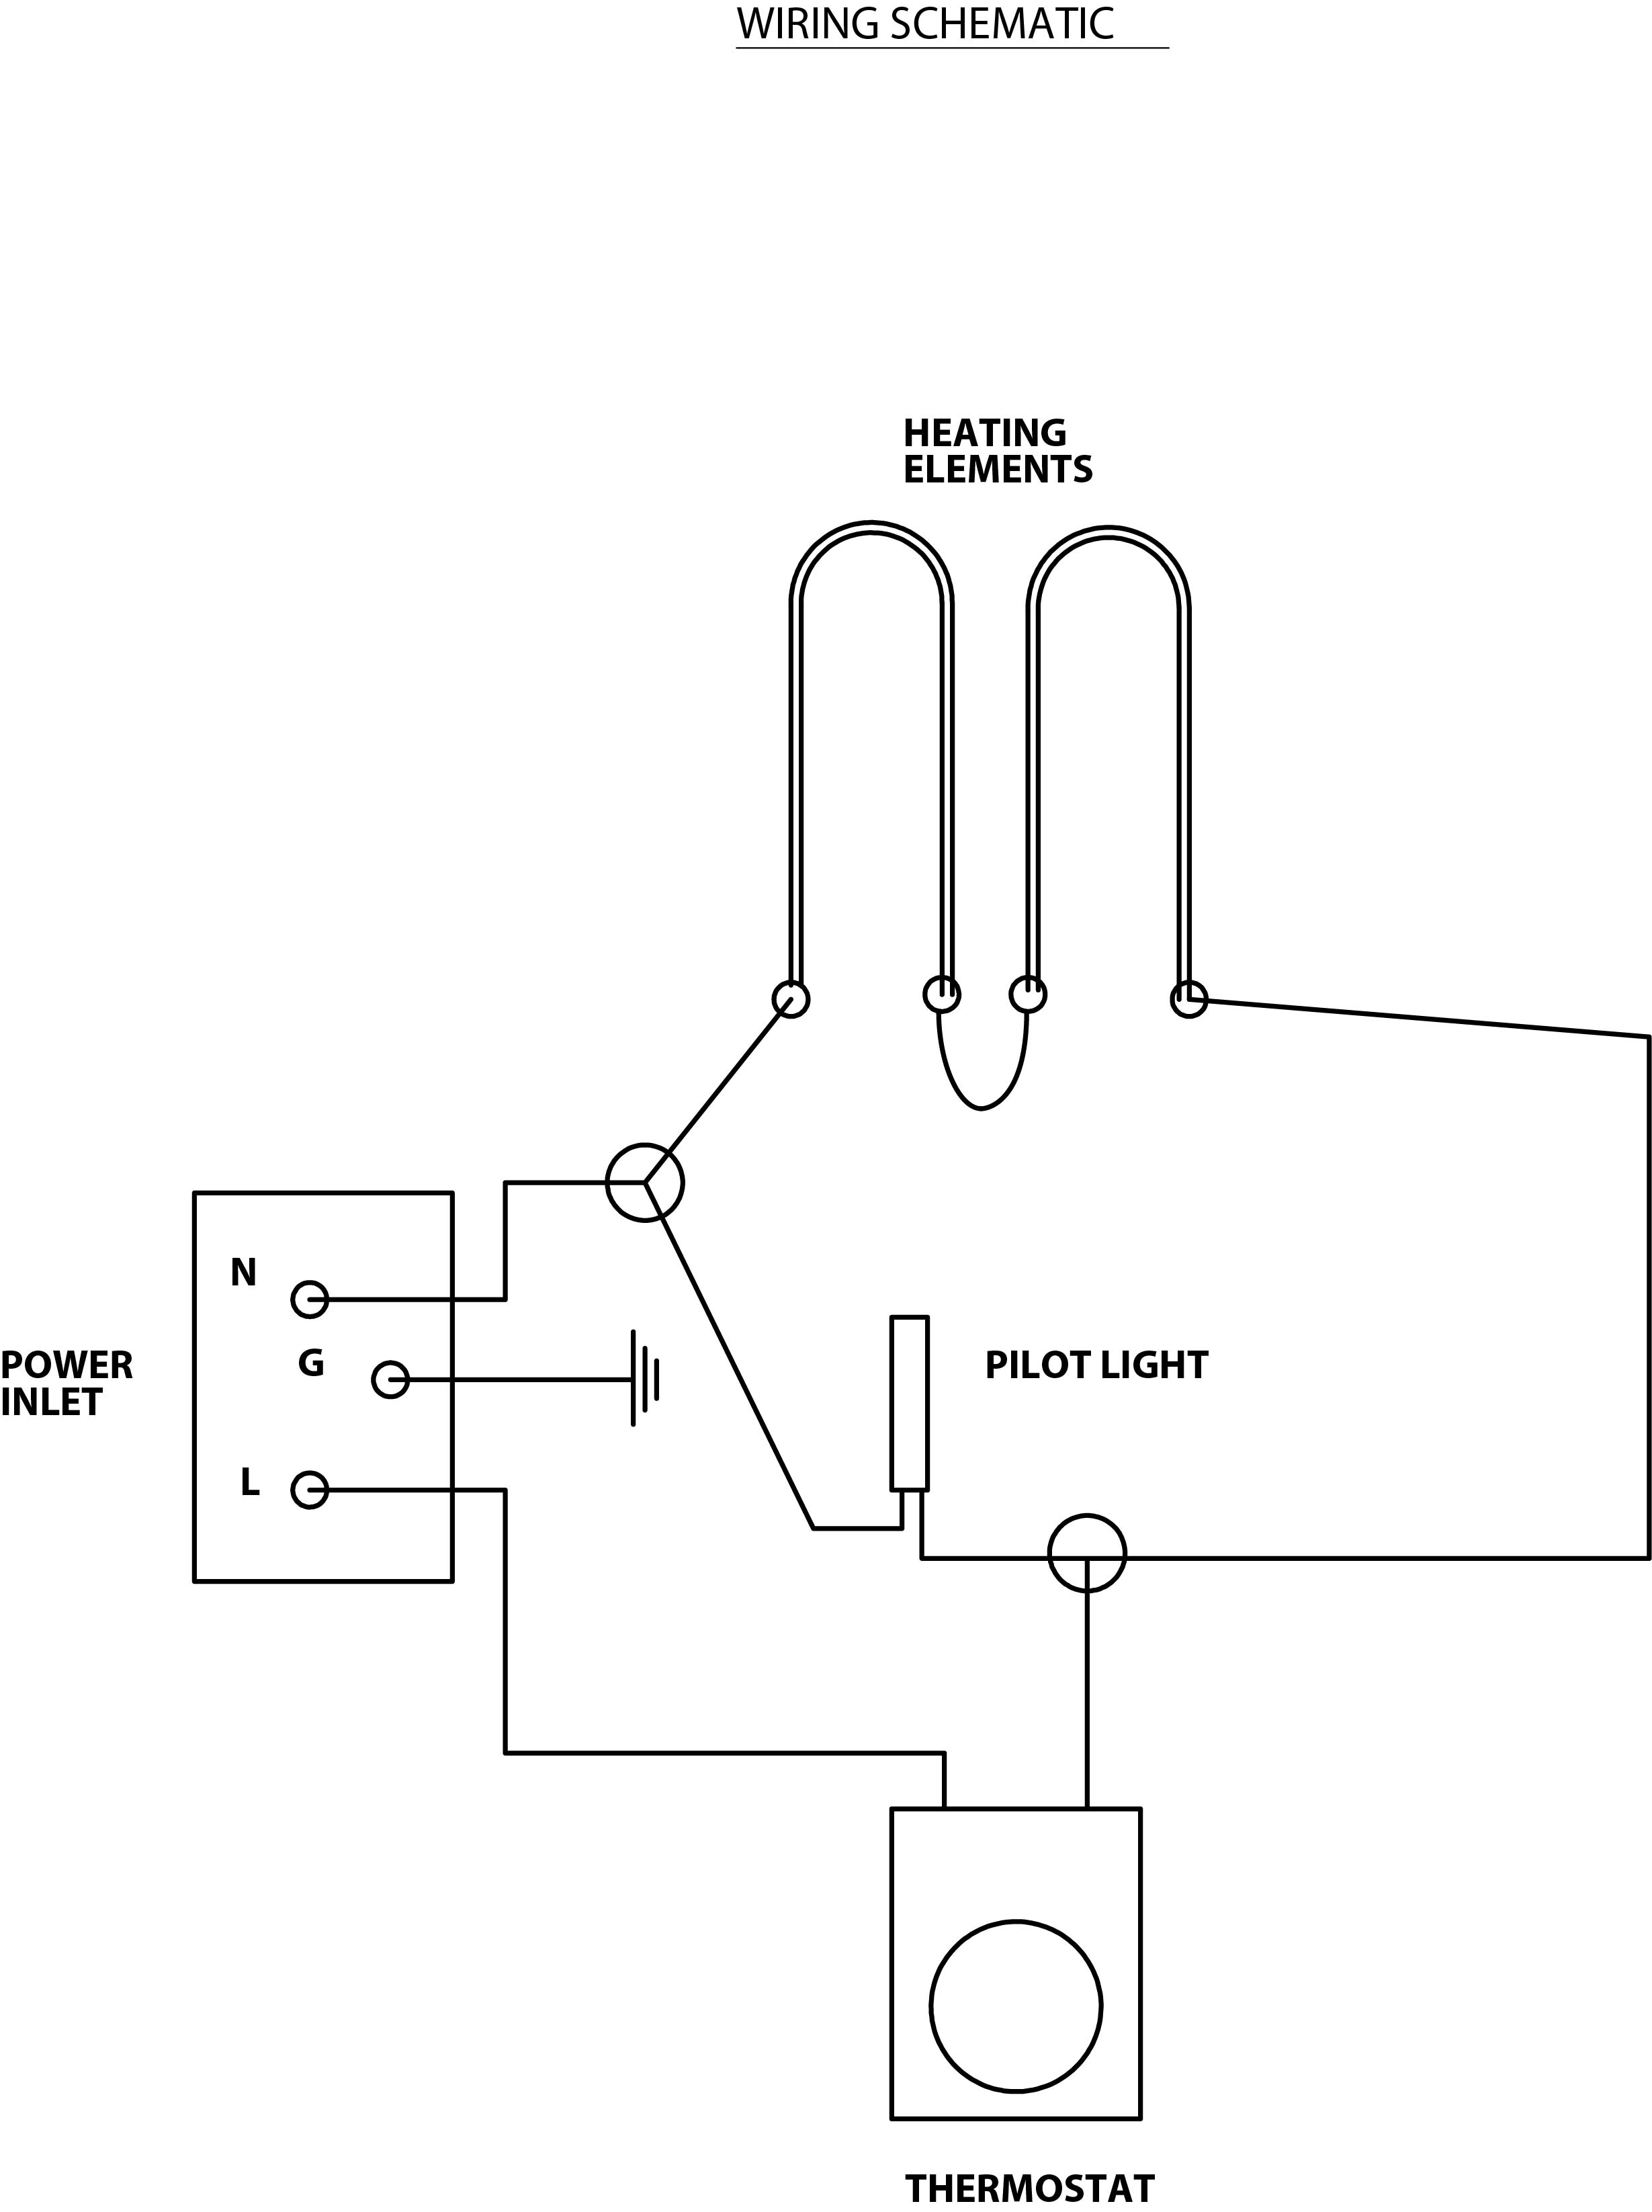 Single Element Wiring Diagram Another Blog About Pump Overrun 3 Phase Thermostat 26 Images